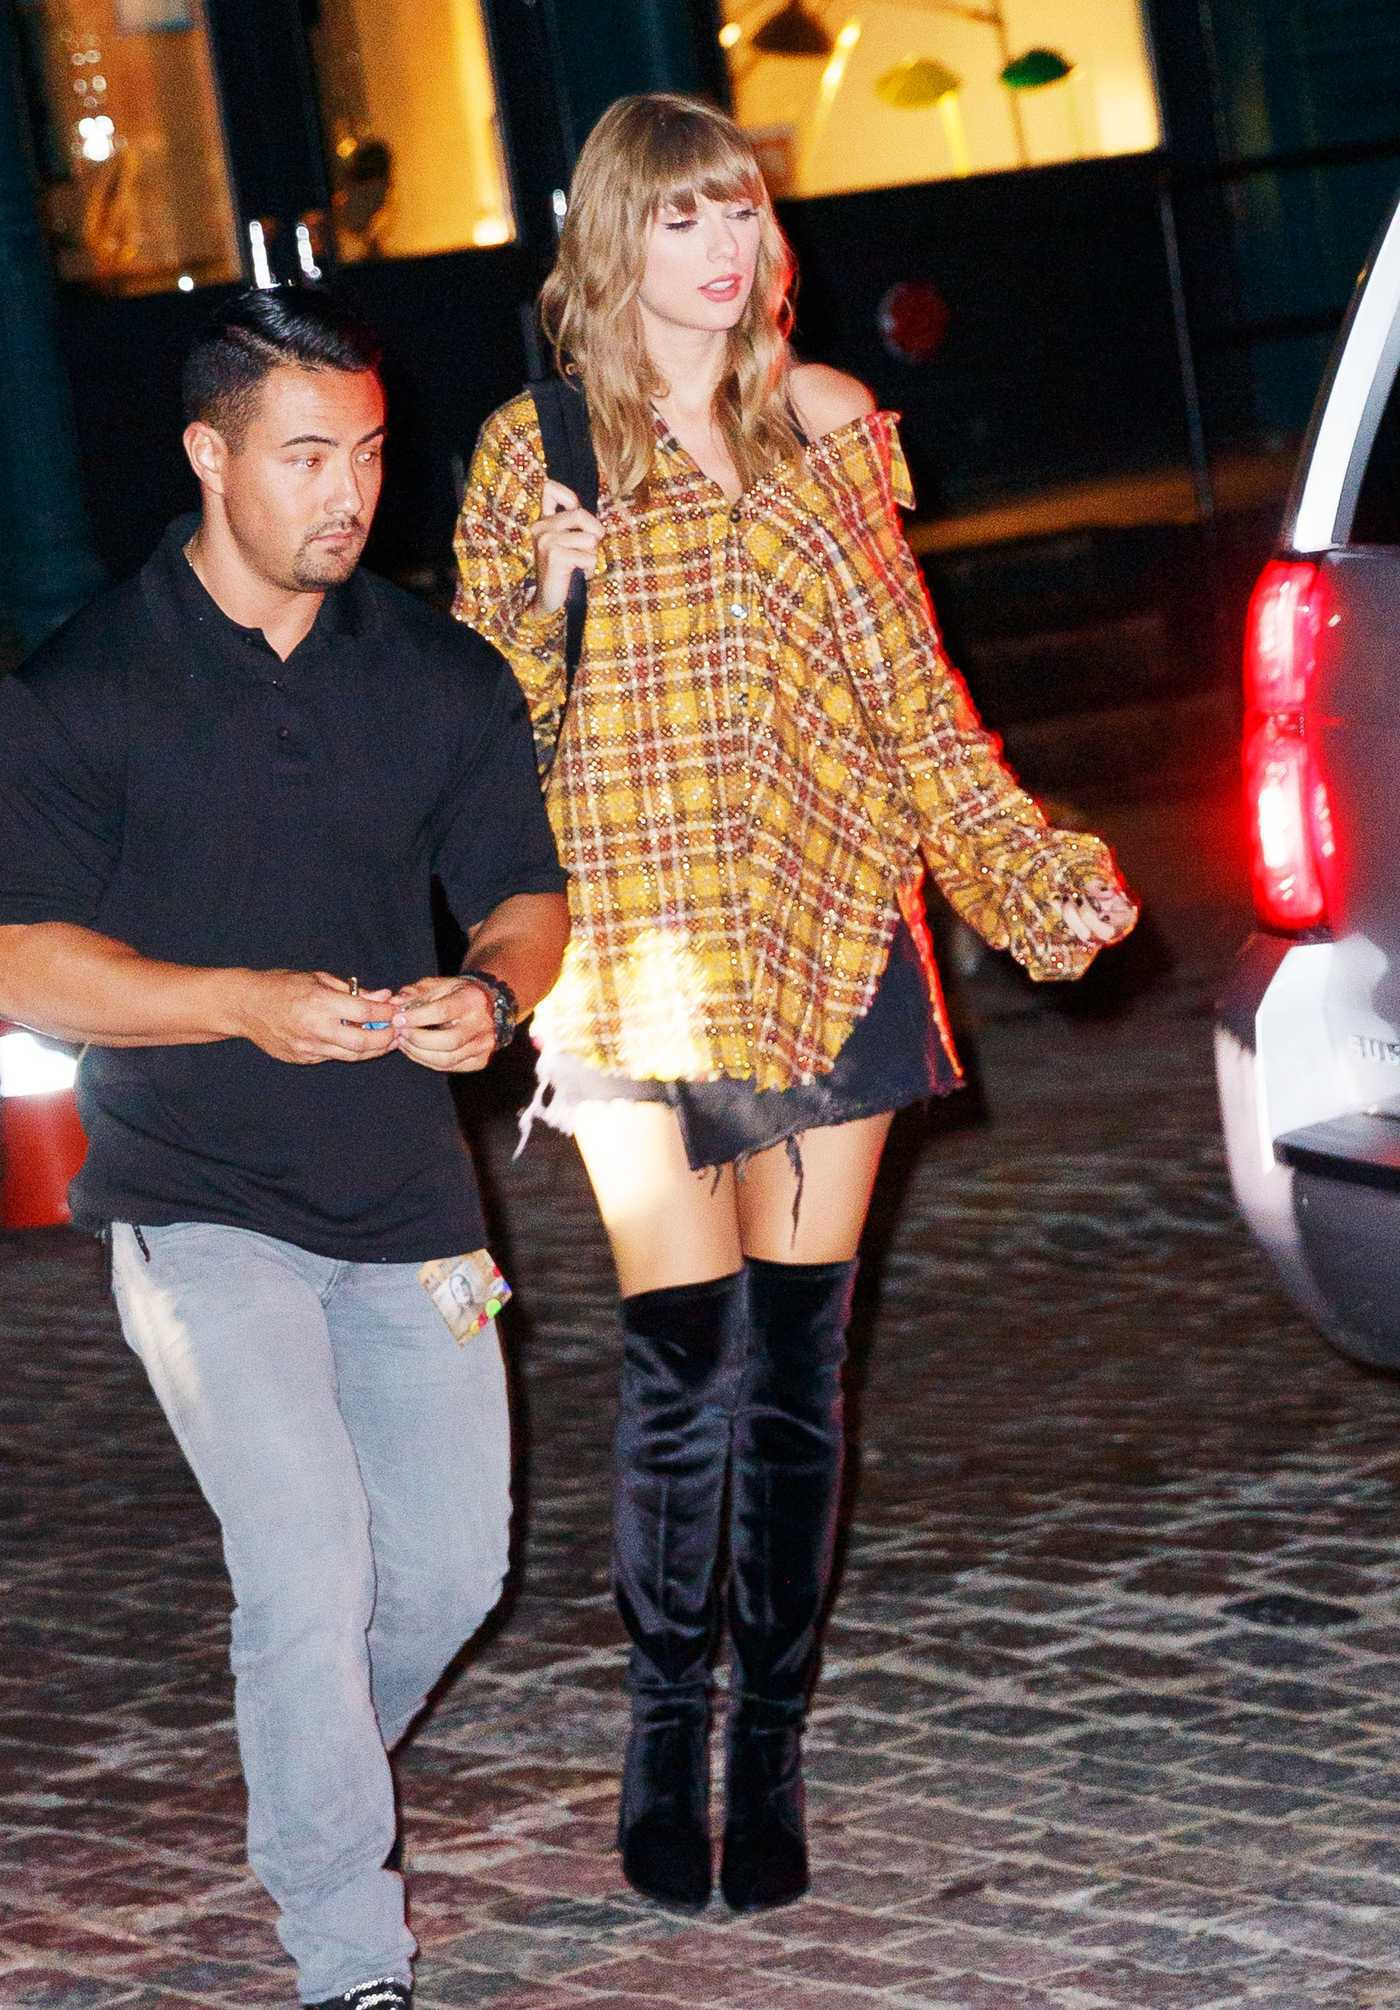 Taylor Swift in a Plaid Shirt Returns Home in New York 07/21/2018